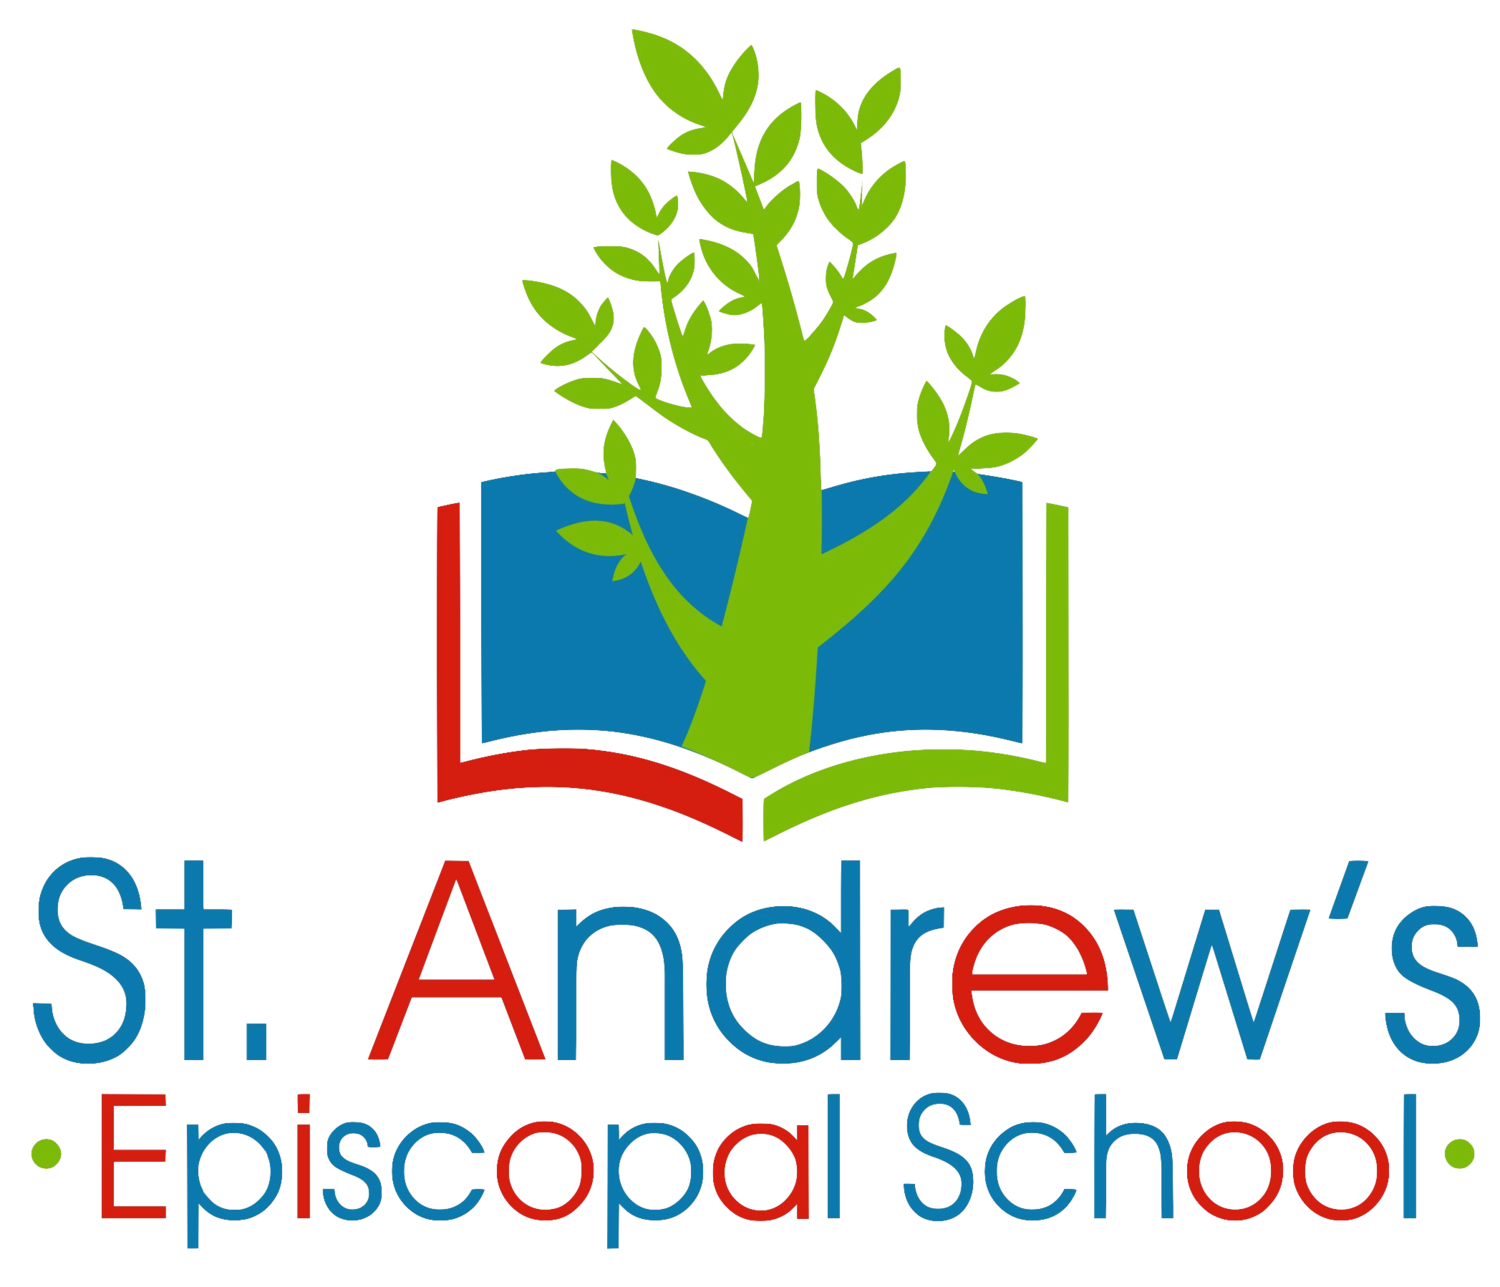 St. Andrew's Episcopal School